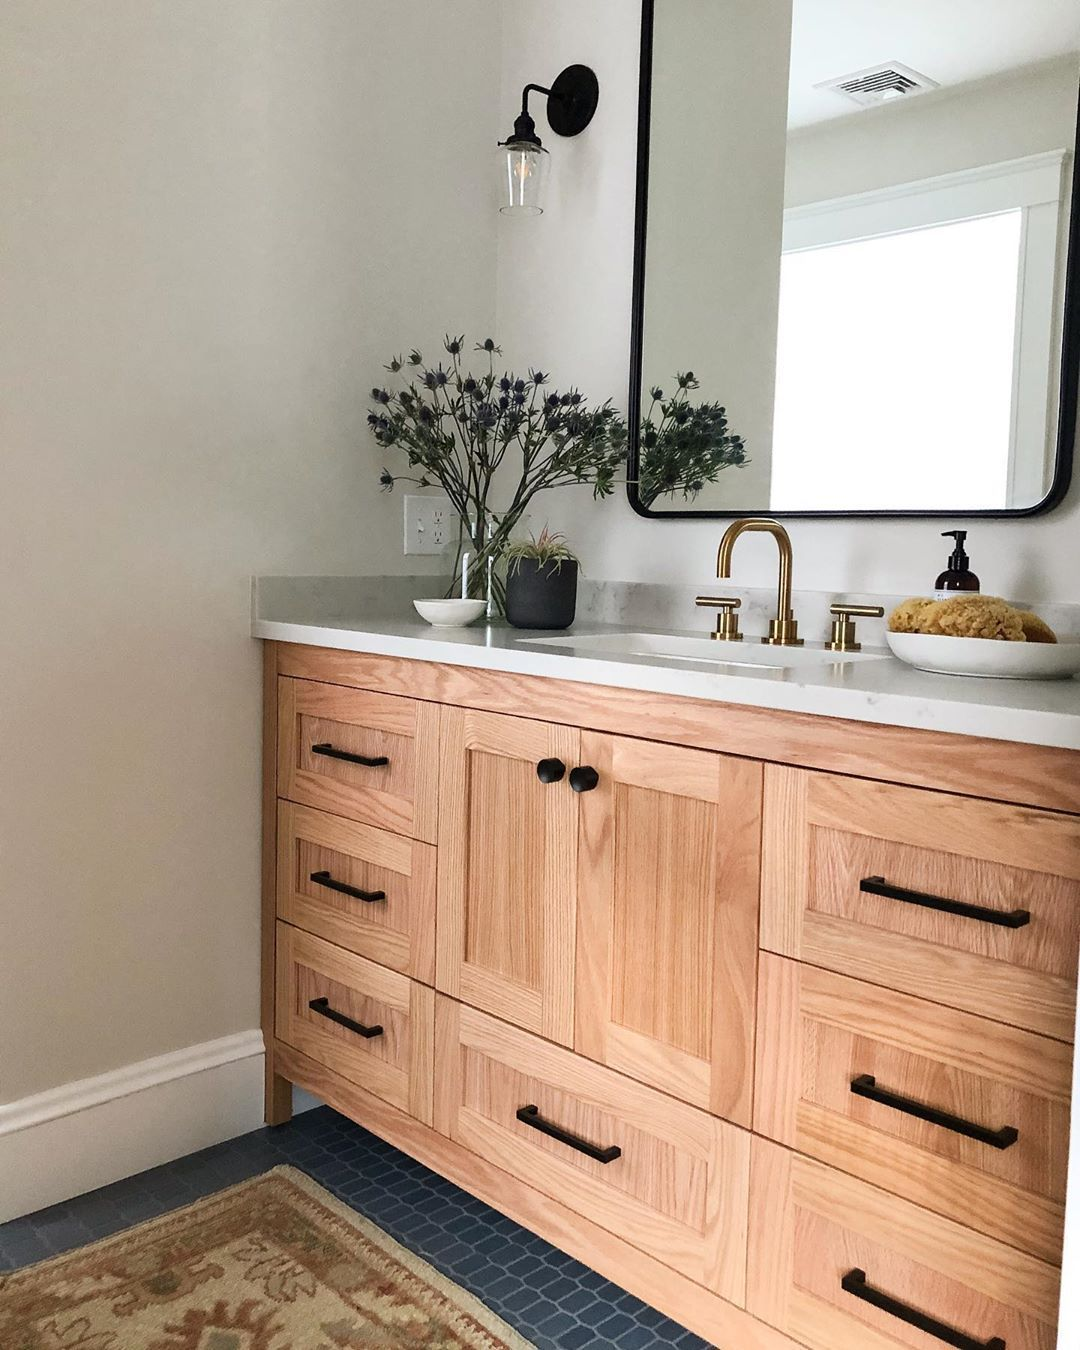 Meg Mcsherry Interiors On Instagram Bathroom Recipe Decide If The Floor Or The Vanity Of Th In 2020 Oak Bathroom Vanity Wood Bathroom Vanity Wood Bathroom Cabinets